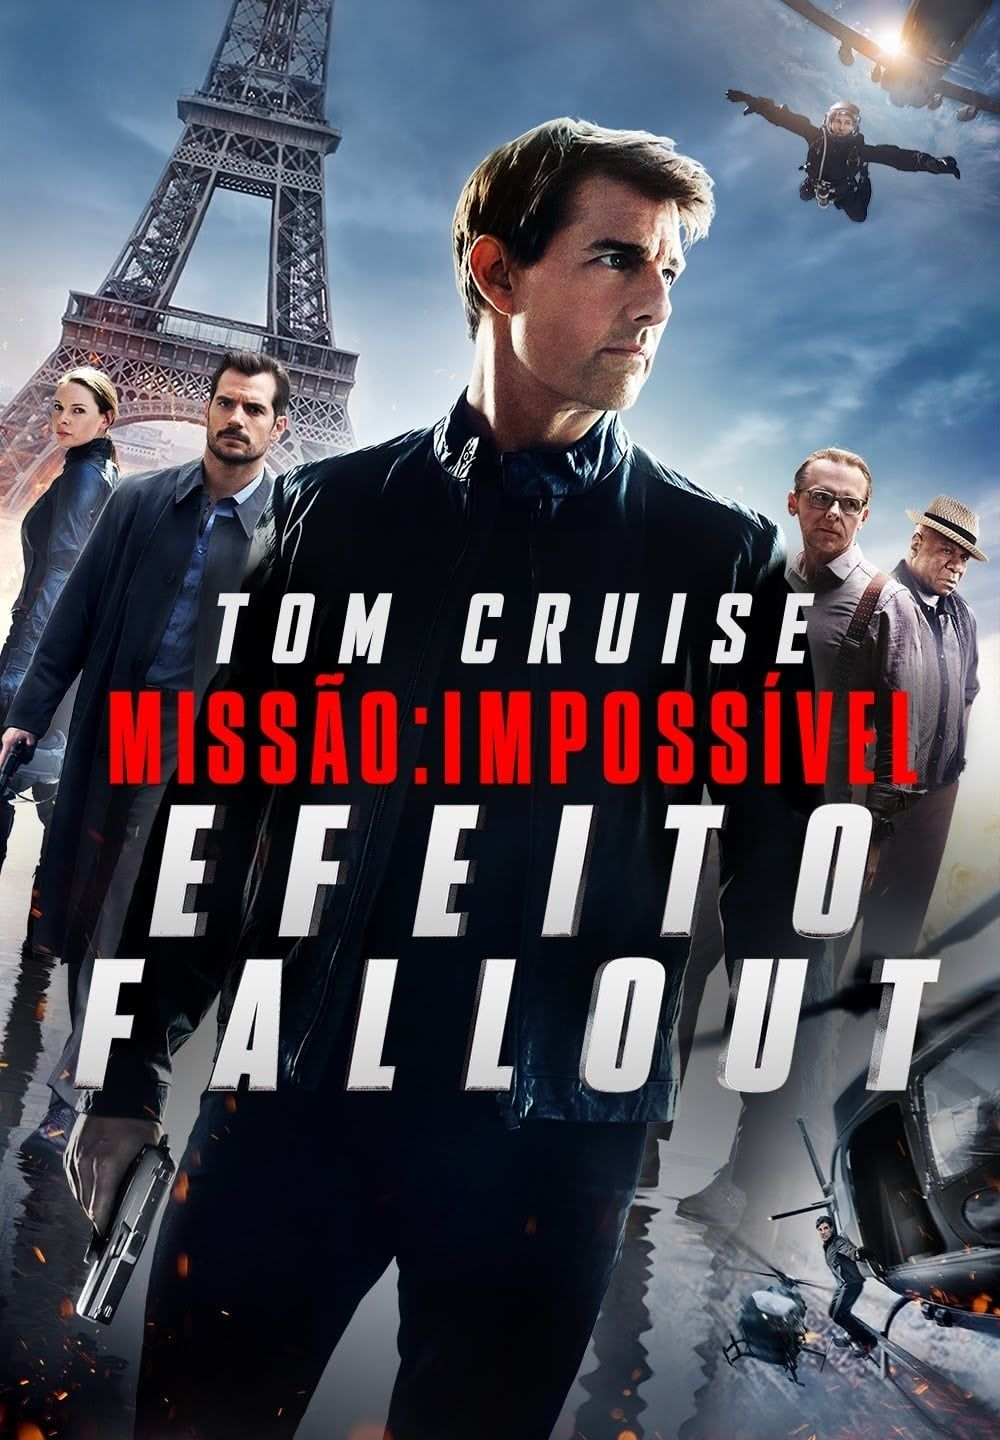 Mission Impossible Fallout Full Movie Online Free English 2018 Hd Q1080p Mission Impossible Fallout Mission Impossible Tom Cruise